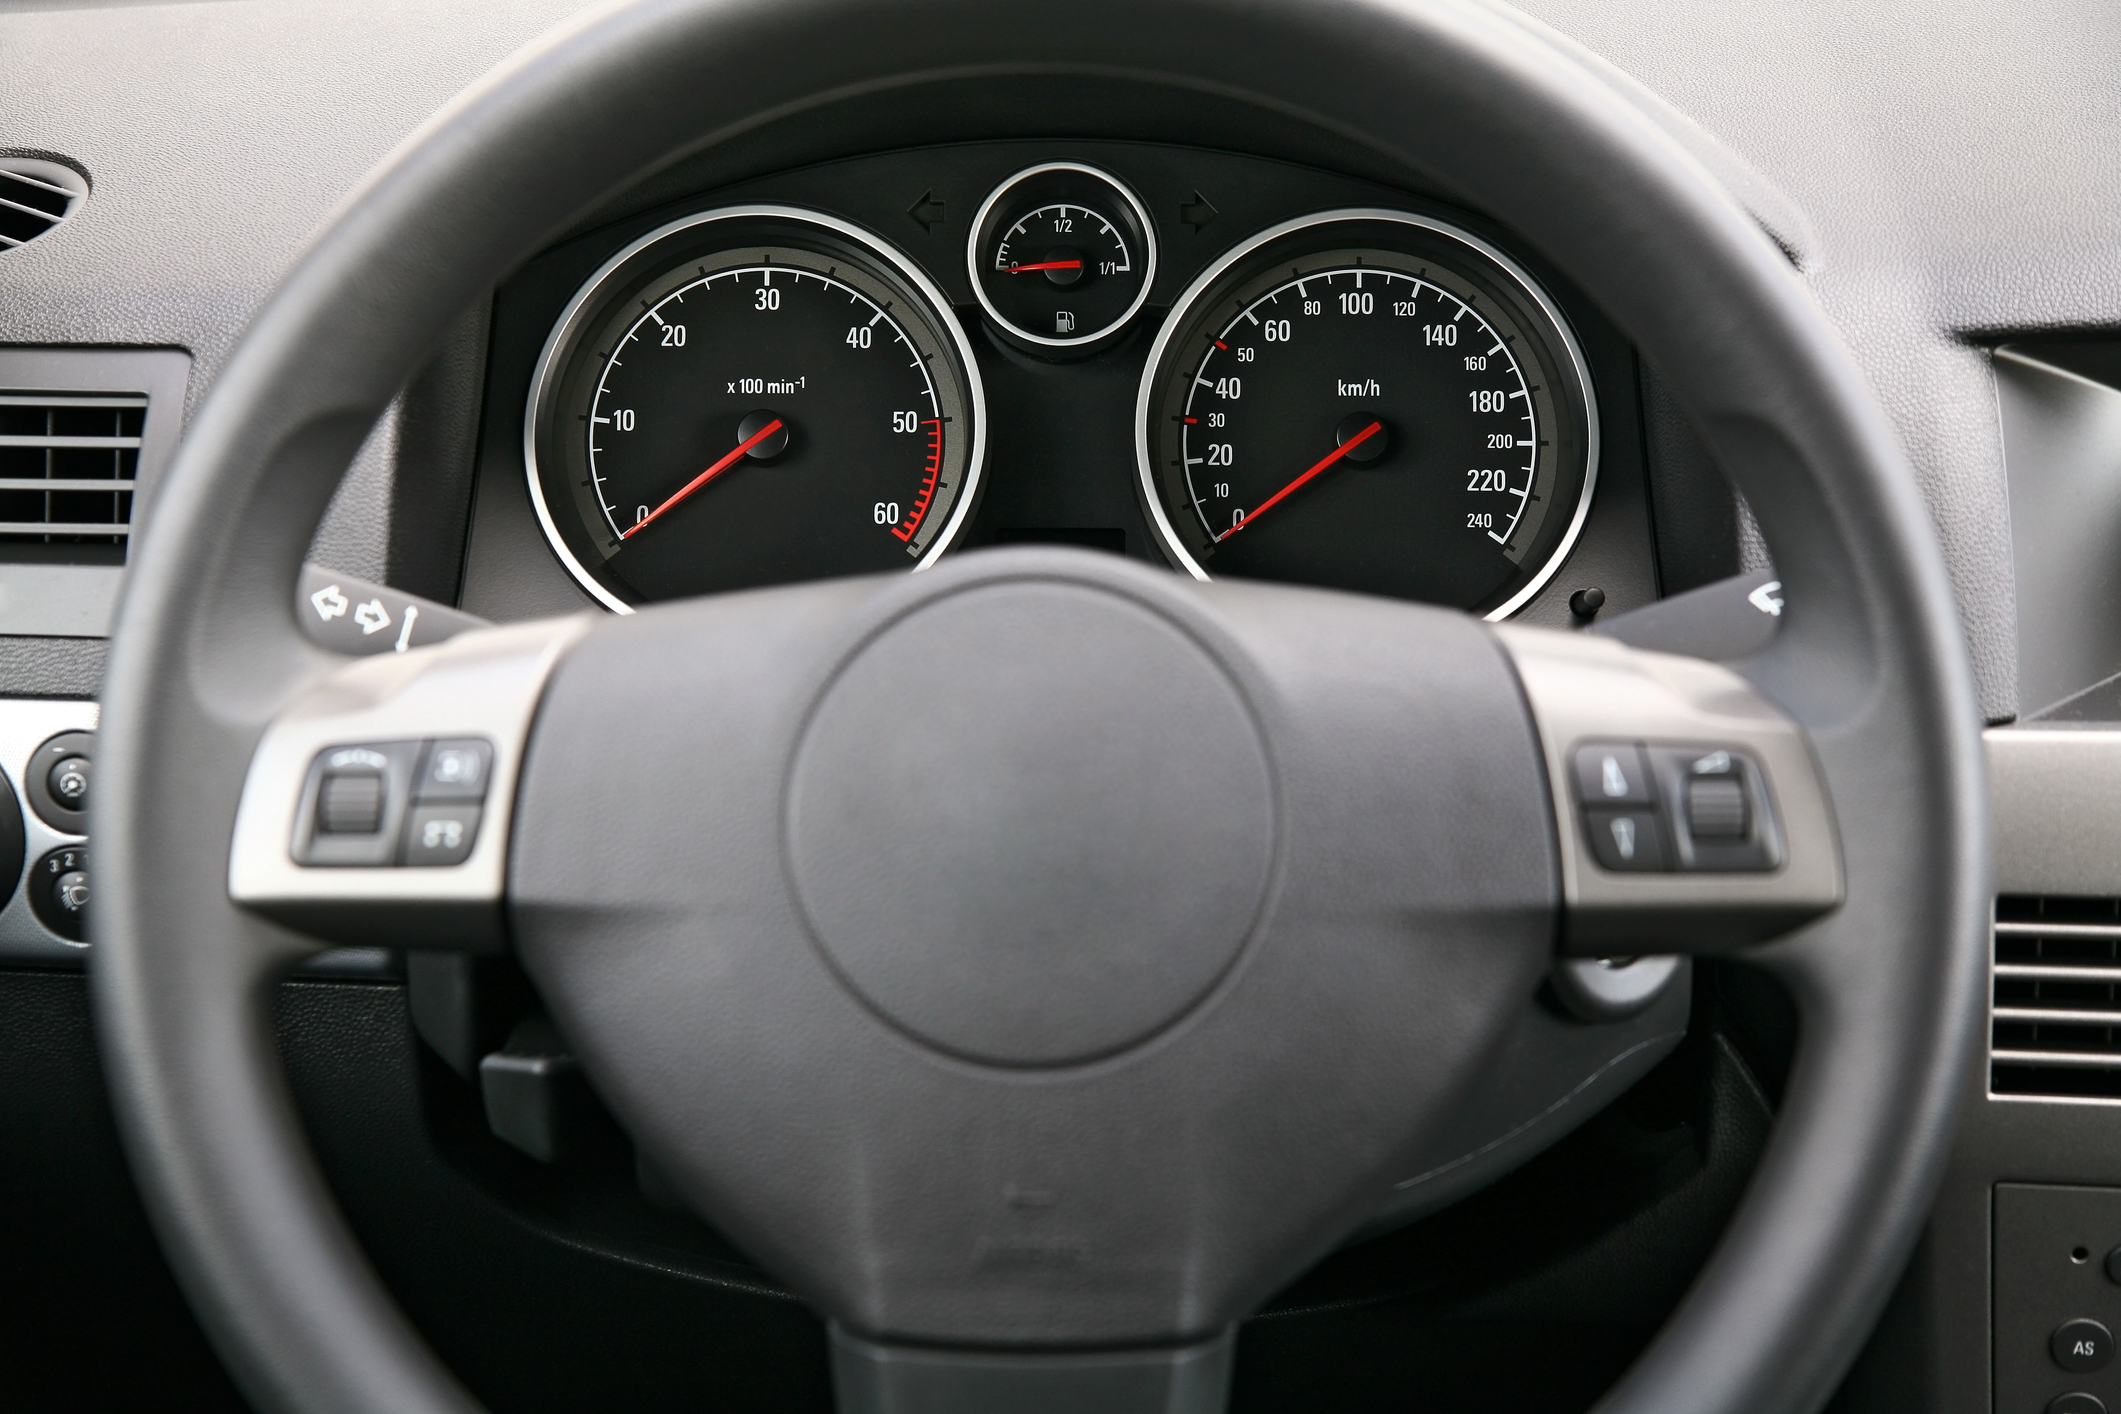 Driving tests for teen drivers could be waived